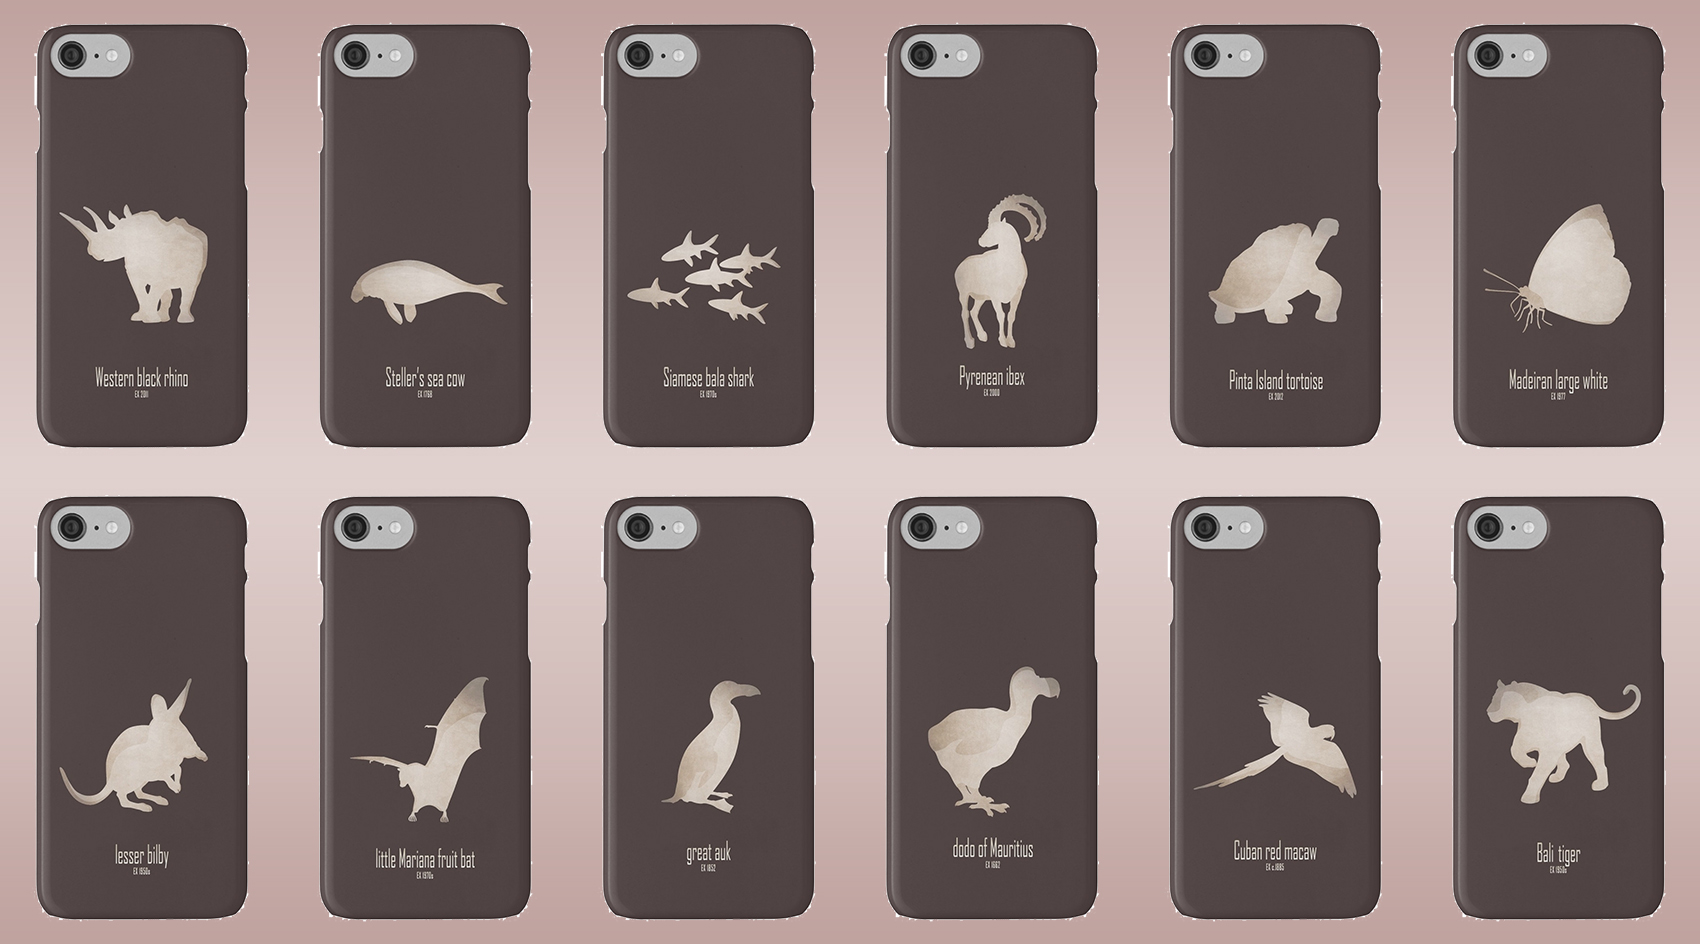 iphone cases skins wallets tough snap Samsung galaxy extinct animals names list species recently extinct 20th century 21st century IUCN red list wildlife conservation efforts save wildlife planet earth logo biodiversity environmentalist emblematic symbol